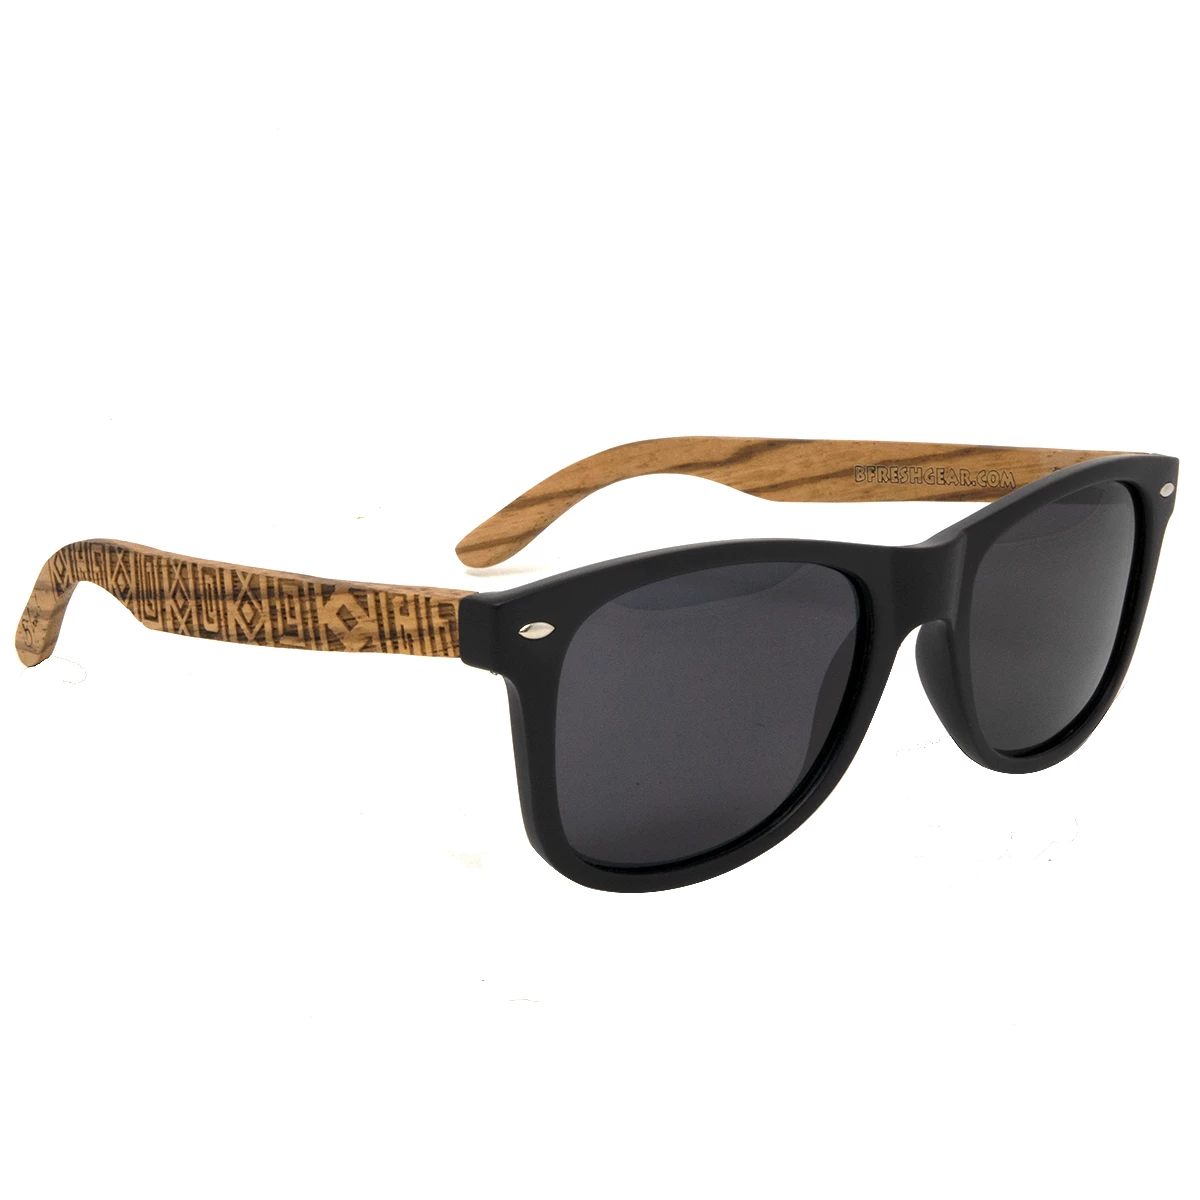 Tiki Engraved - Vintage Wooden Sunglasses - B Fresh